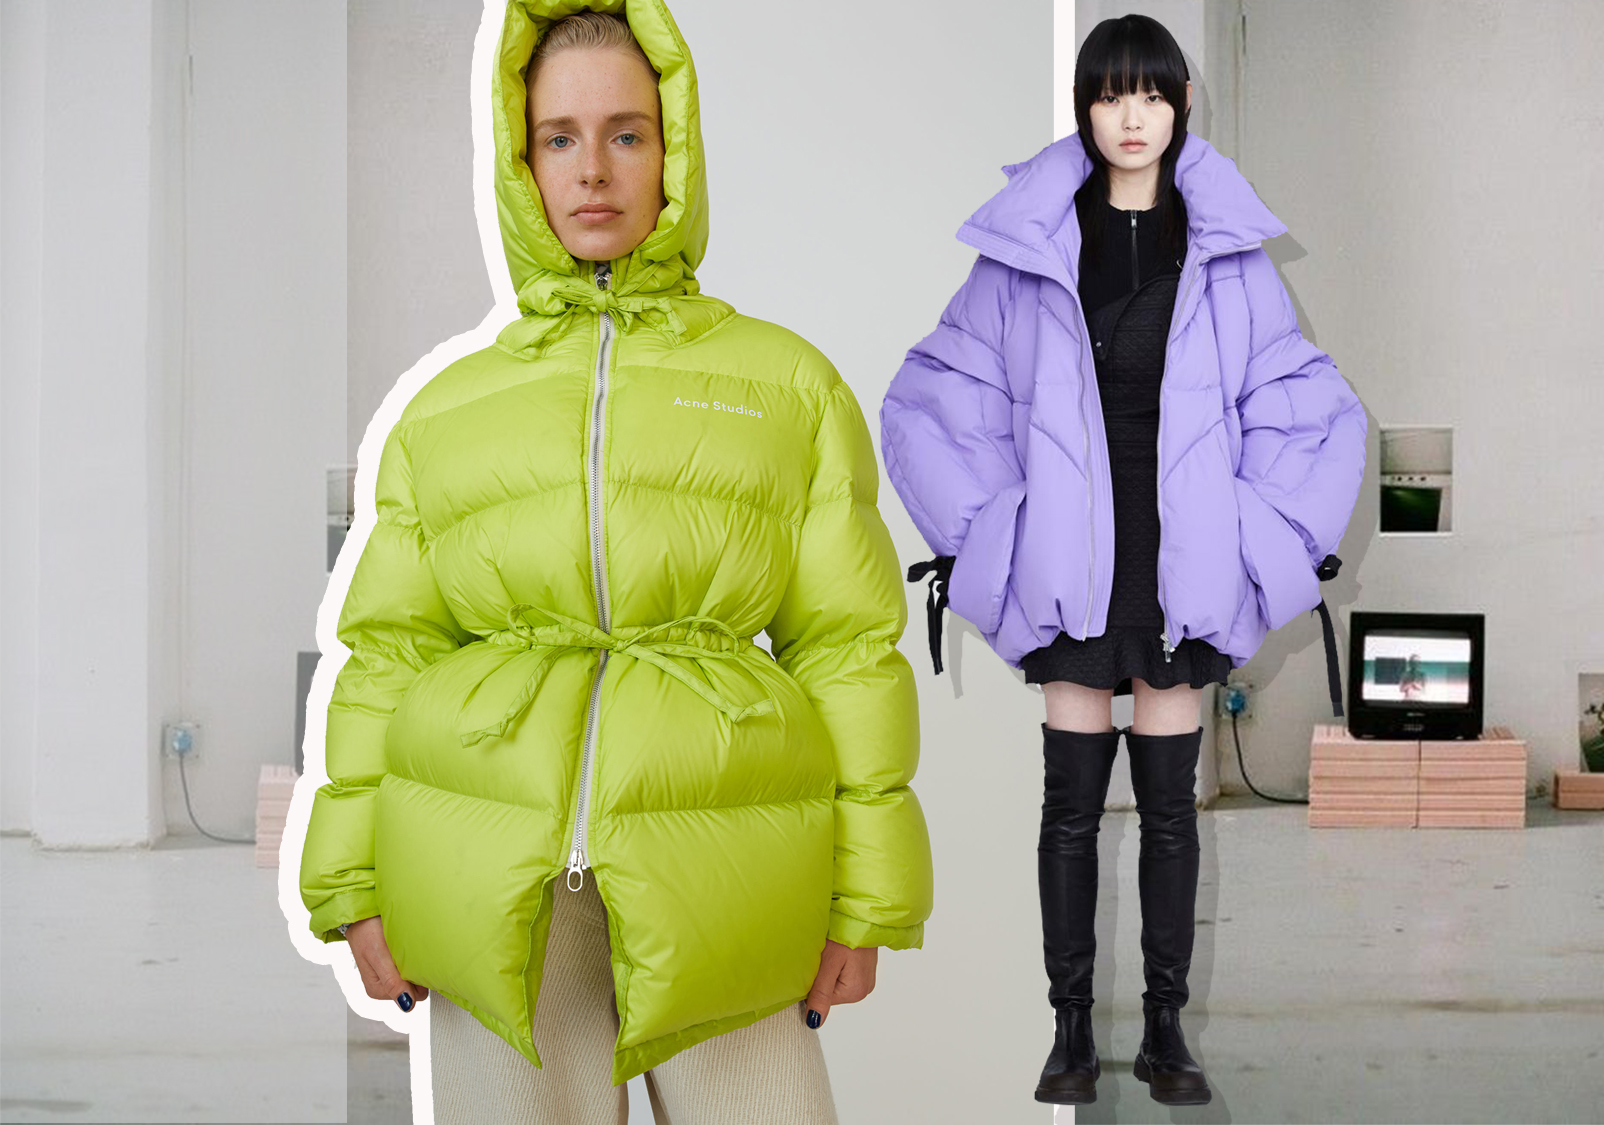 Fashionable and Cool -- The Silhouette Trend for Women's Puffa Jackets